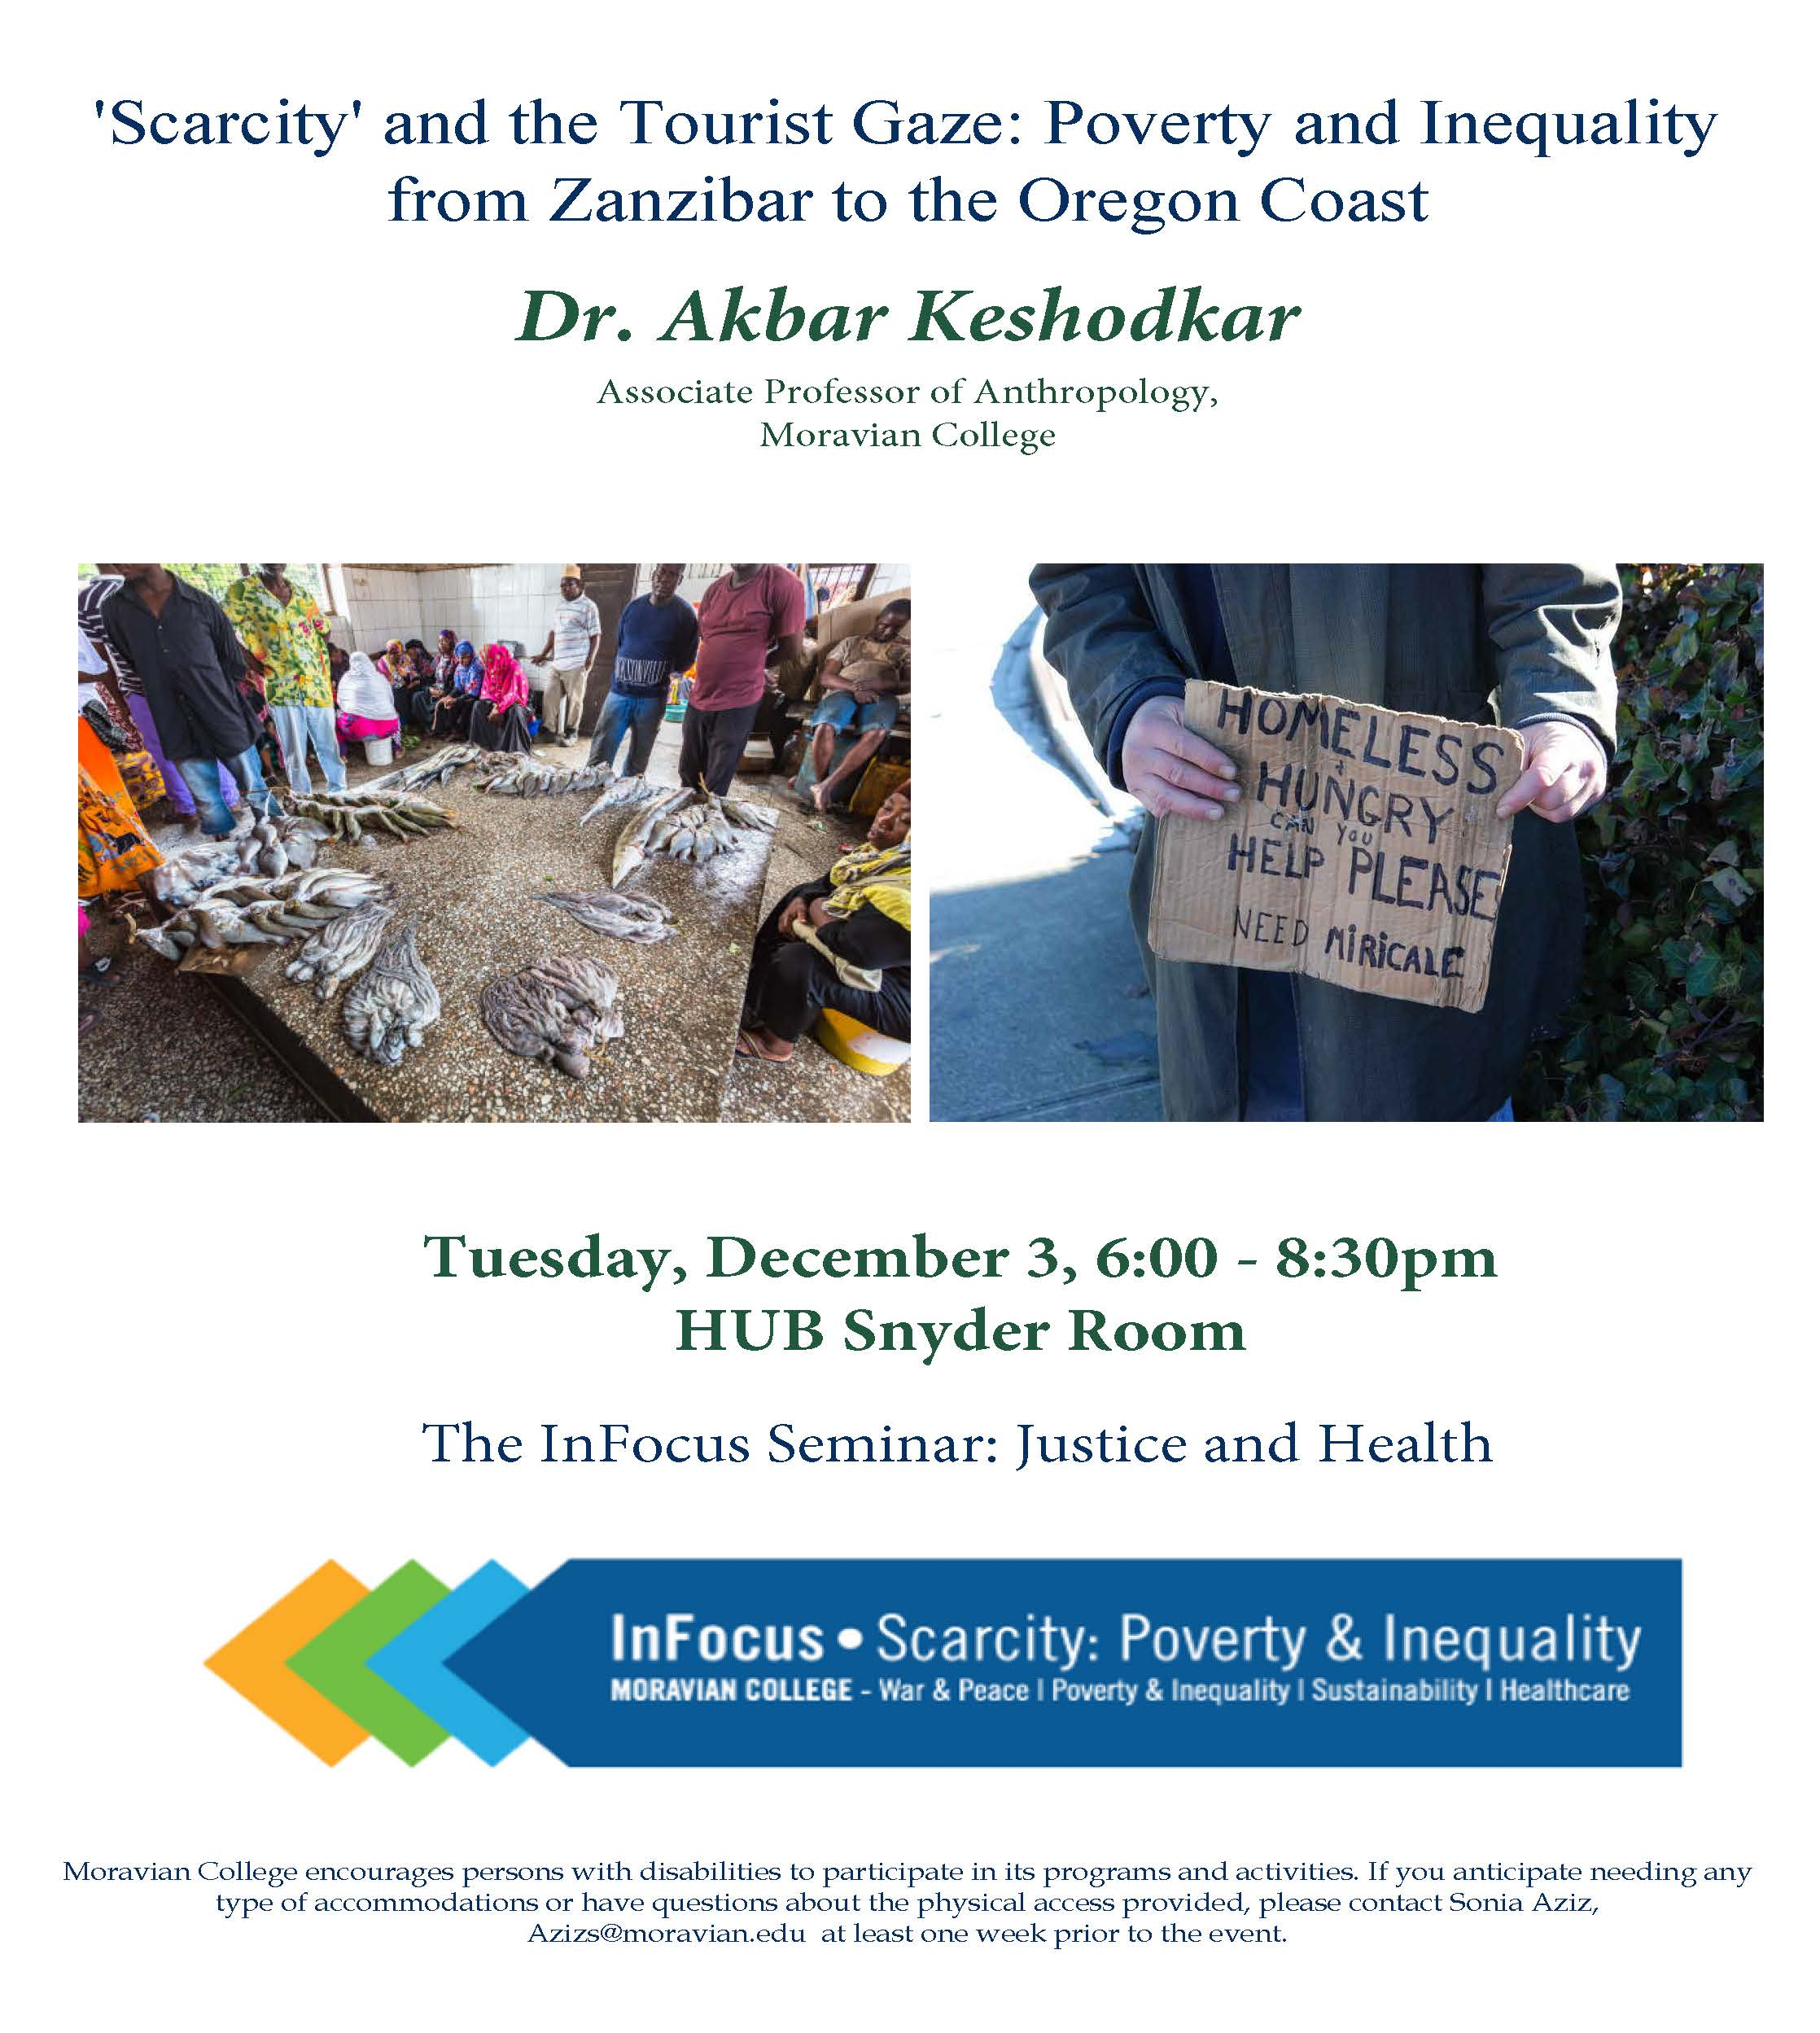 'Scarcity' and the Tourist Gaze: Poverty and Inequality from Zanzibar to the Oregon Coast Dr. Akbar Keshodkar Associate Professor of Anthropology, Moravian College Tuesday, December 3, 6:00 - 8:30pm  HUB Snyder Room   The InFocus Seminar: Justice and Health